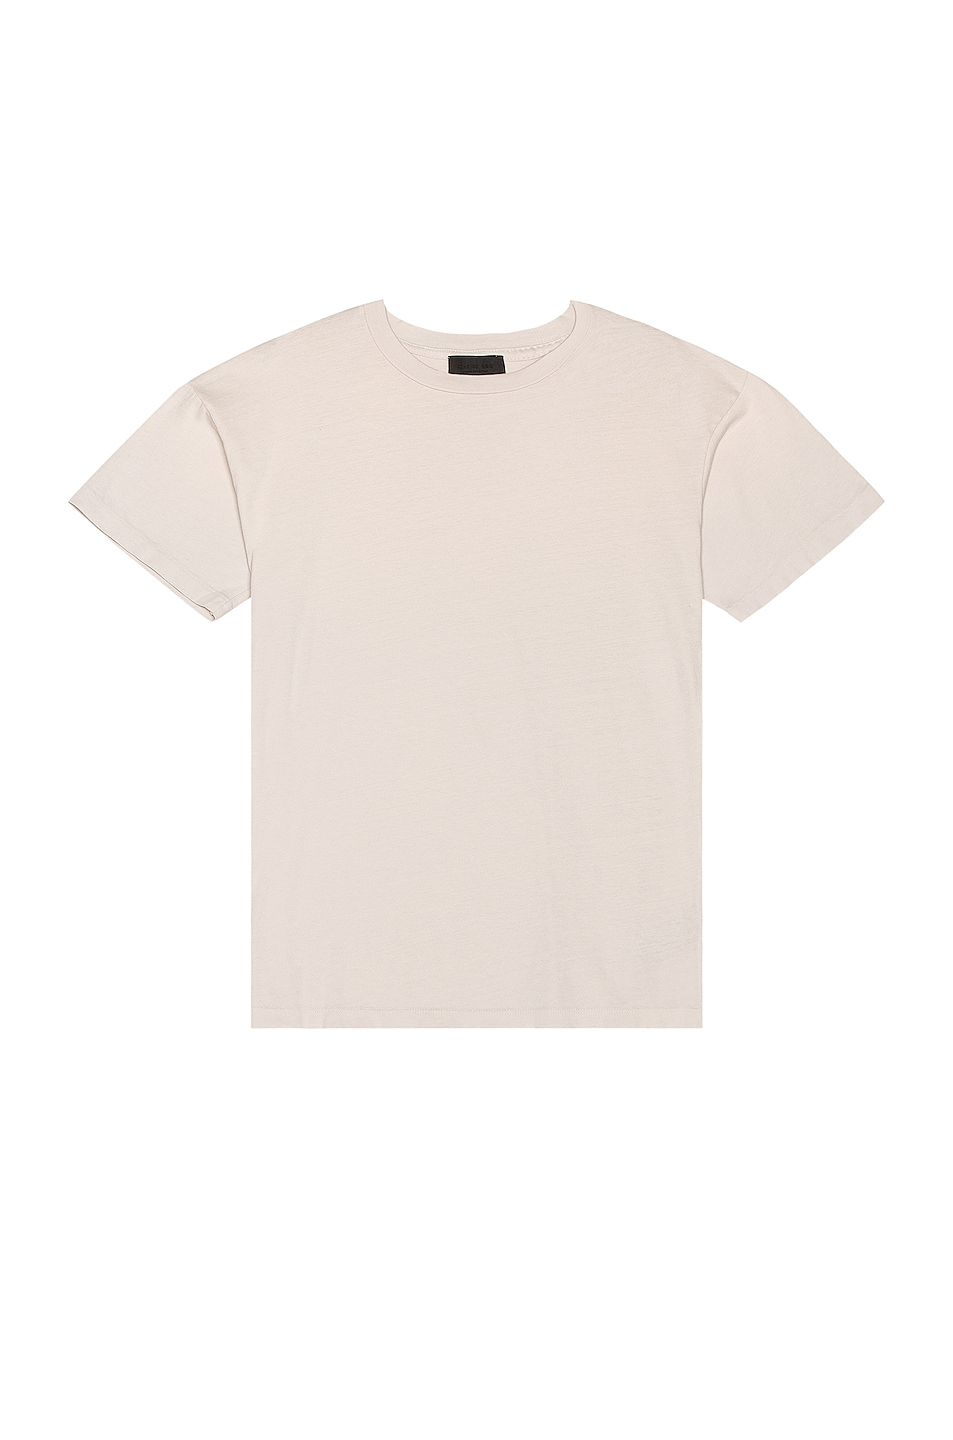 Image 1 of Fear of God Perfect Vintage Tee in Vintage Concrete White